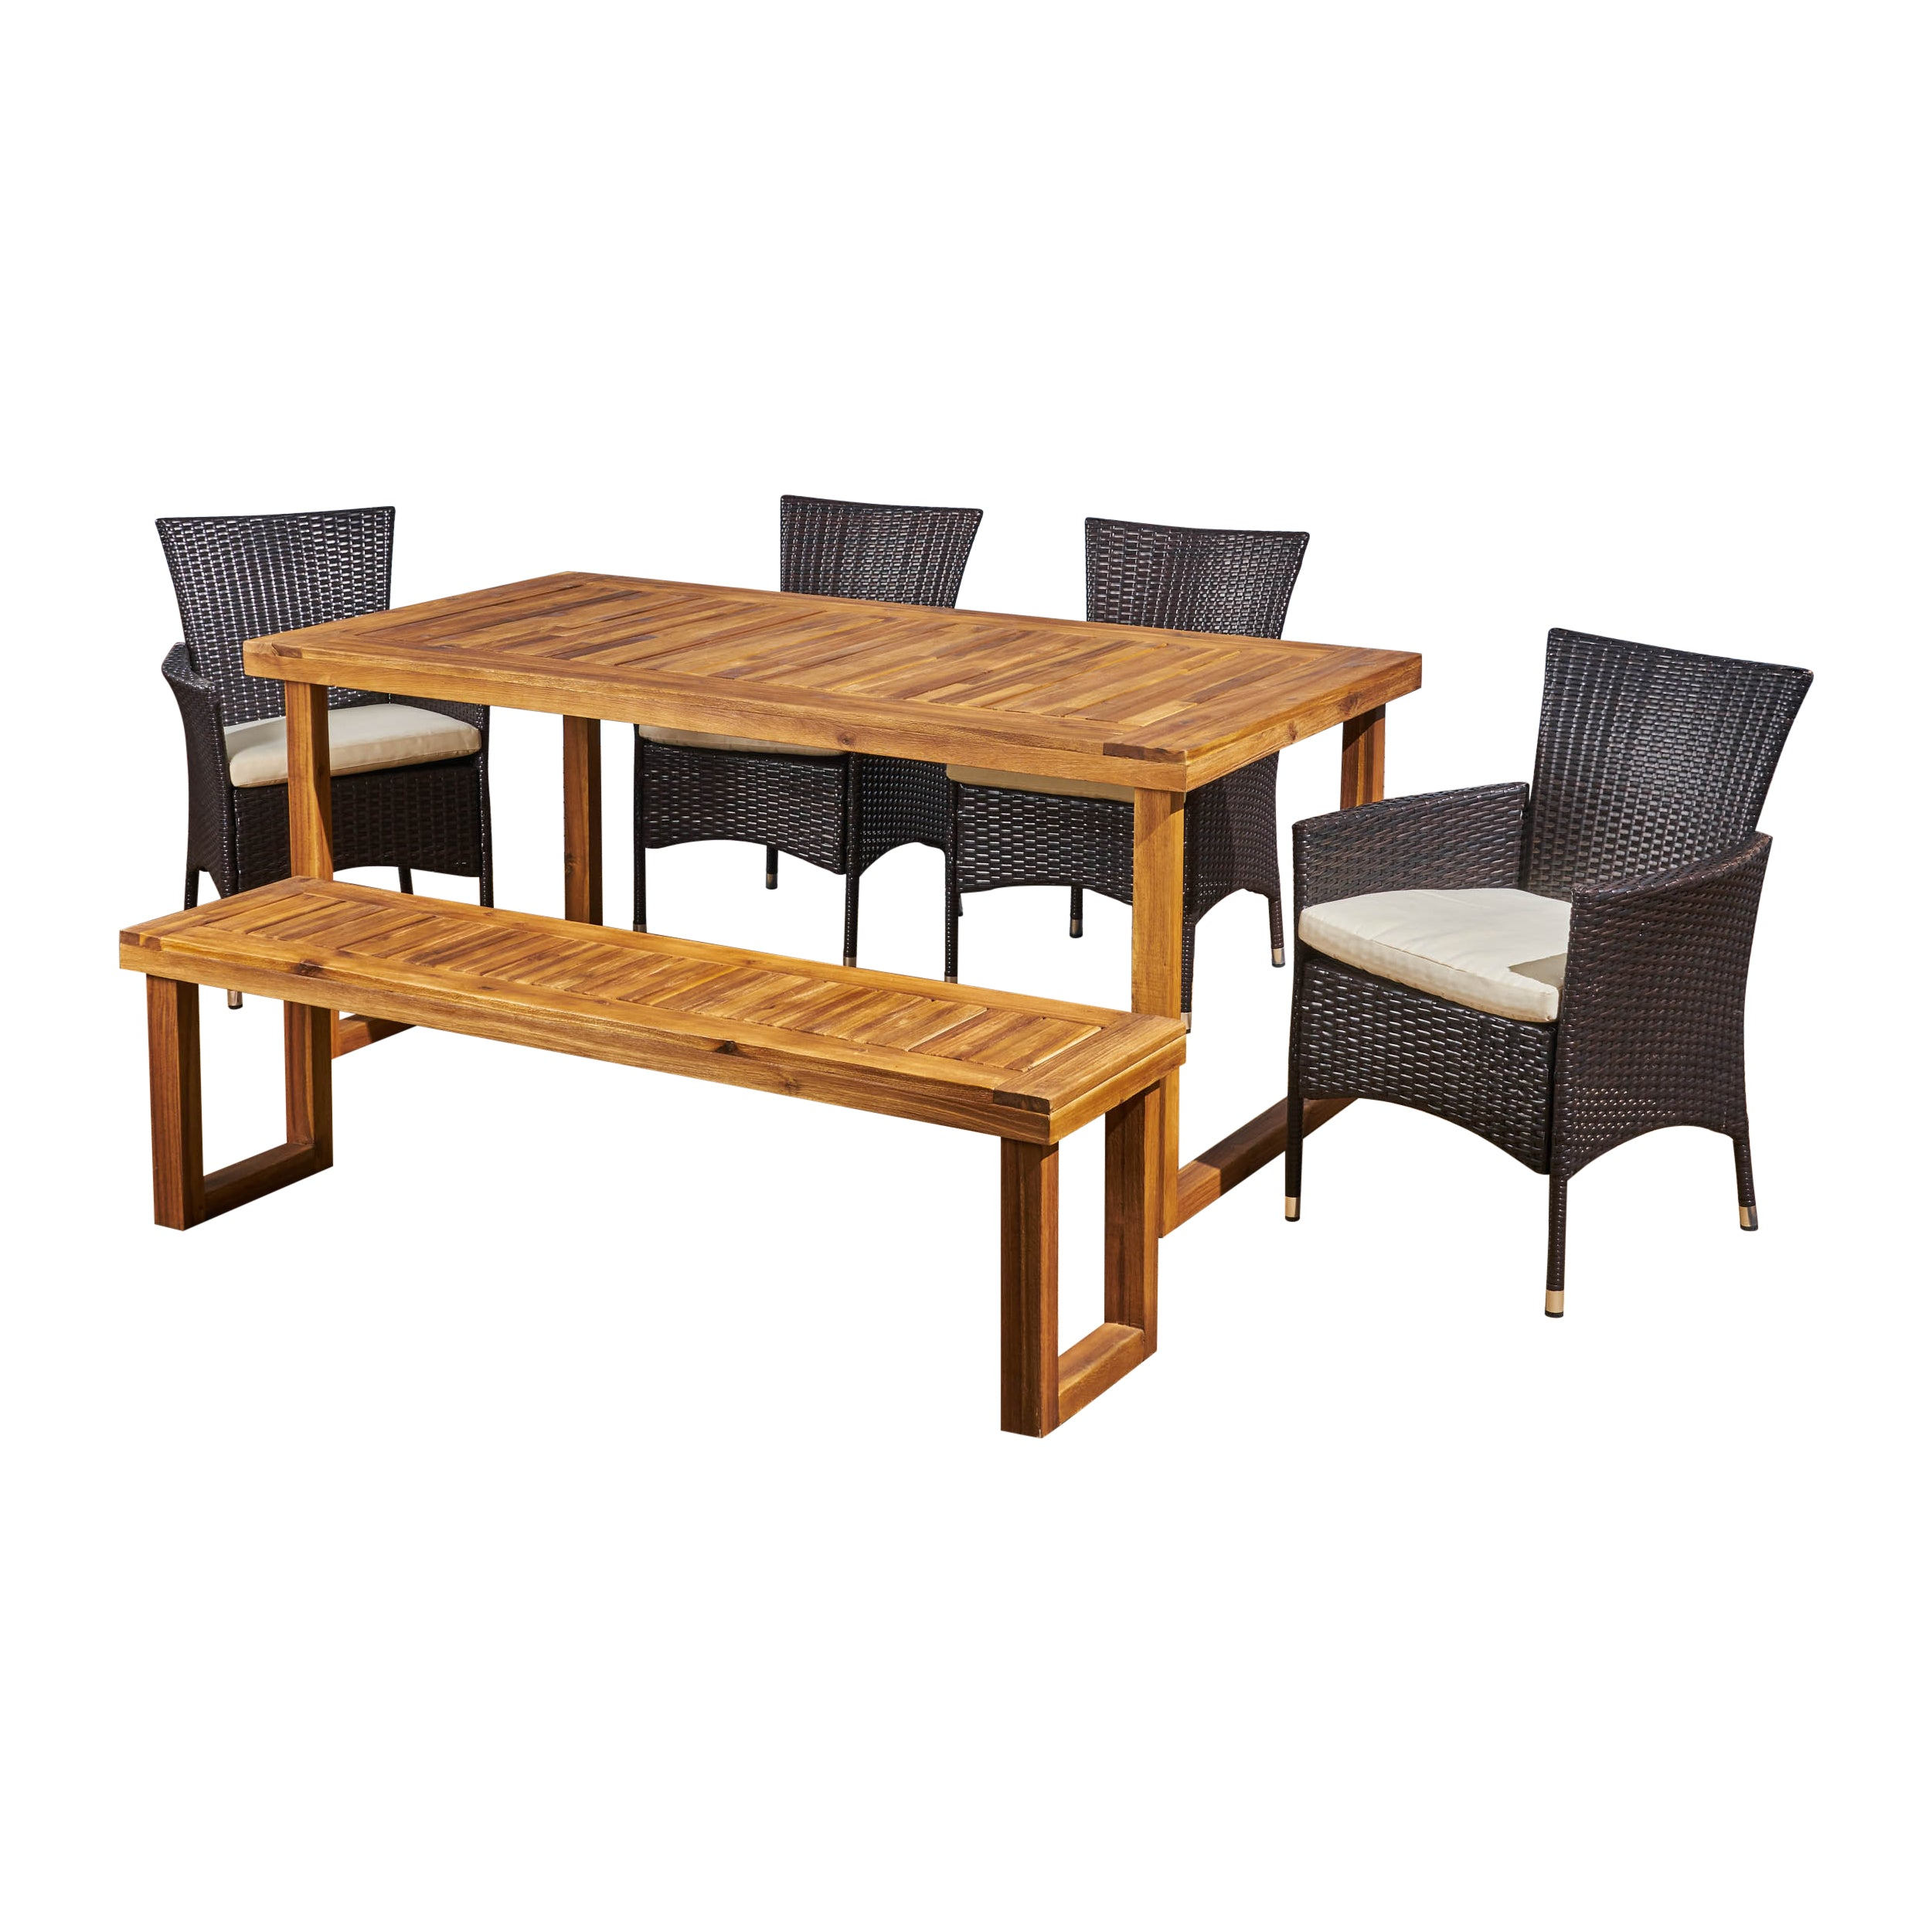 Agnes Outdoor 6 Seater Wood and Wicker Chair and Bench Dining Set SandBlast Dark Grey Gray Silver